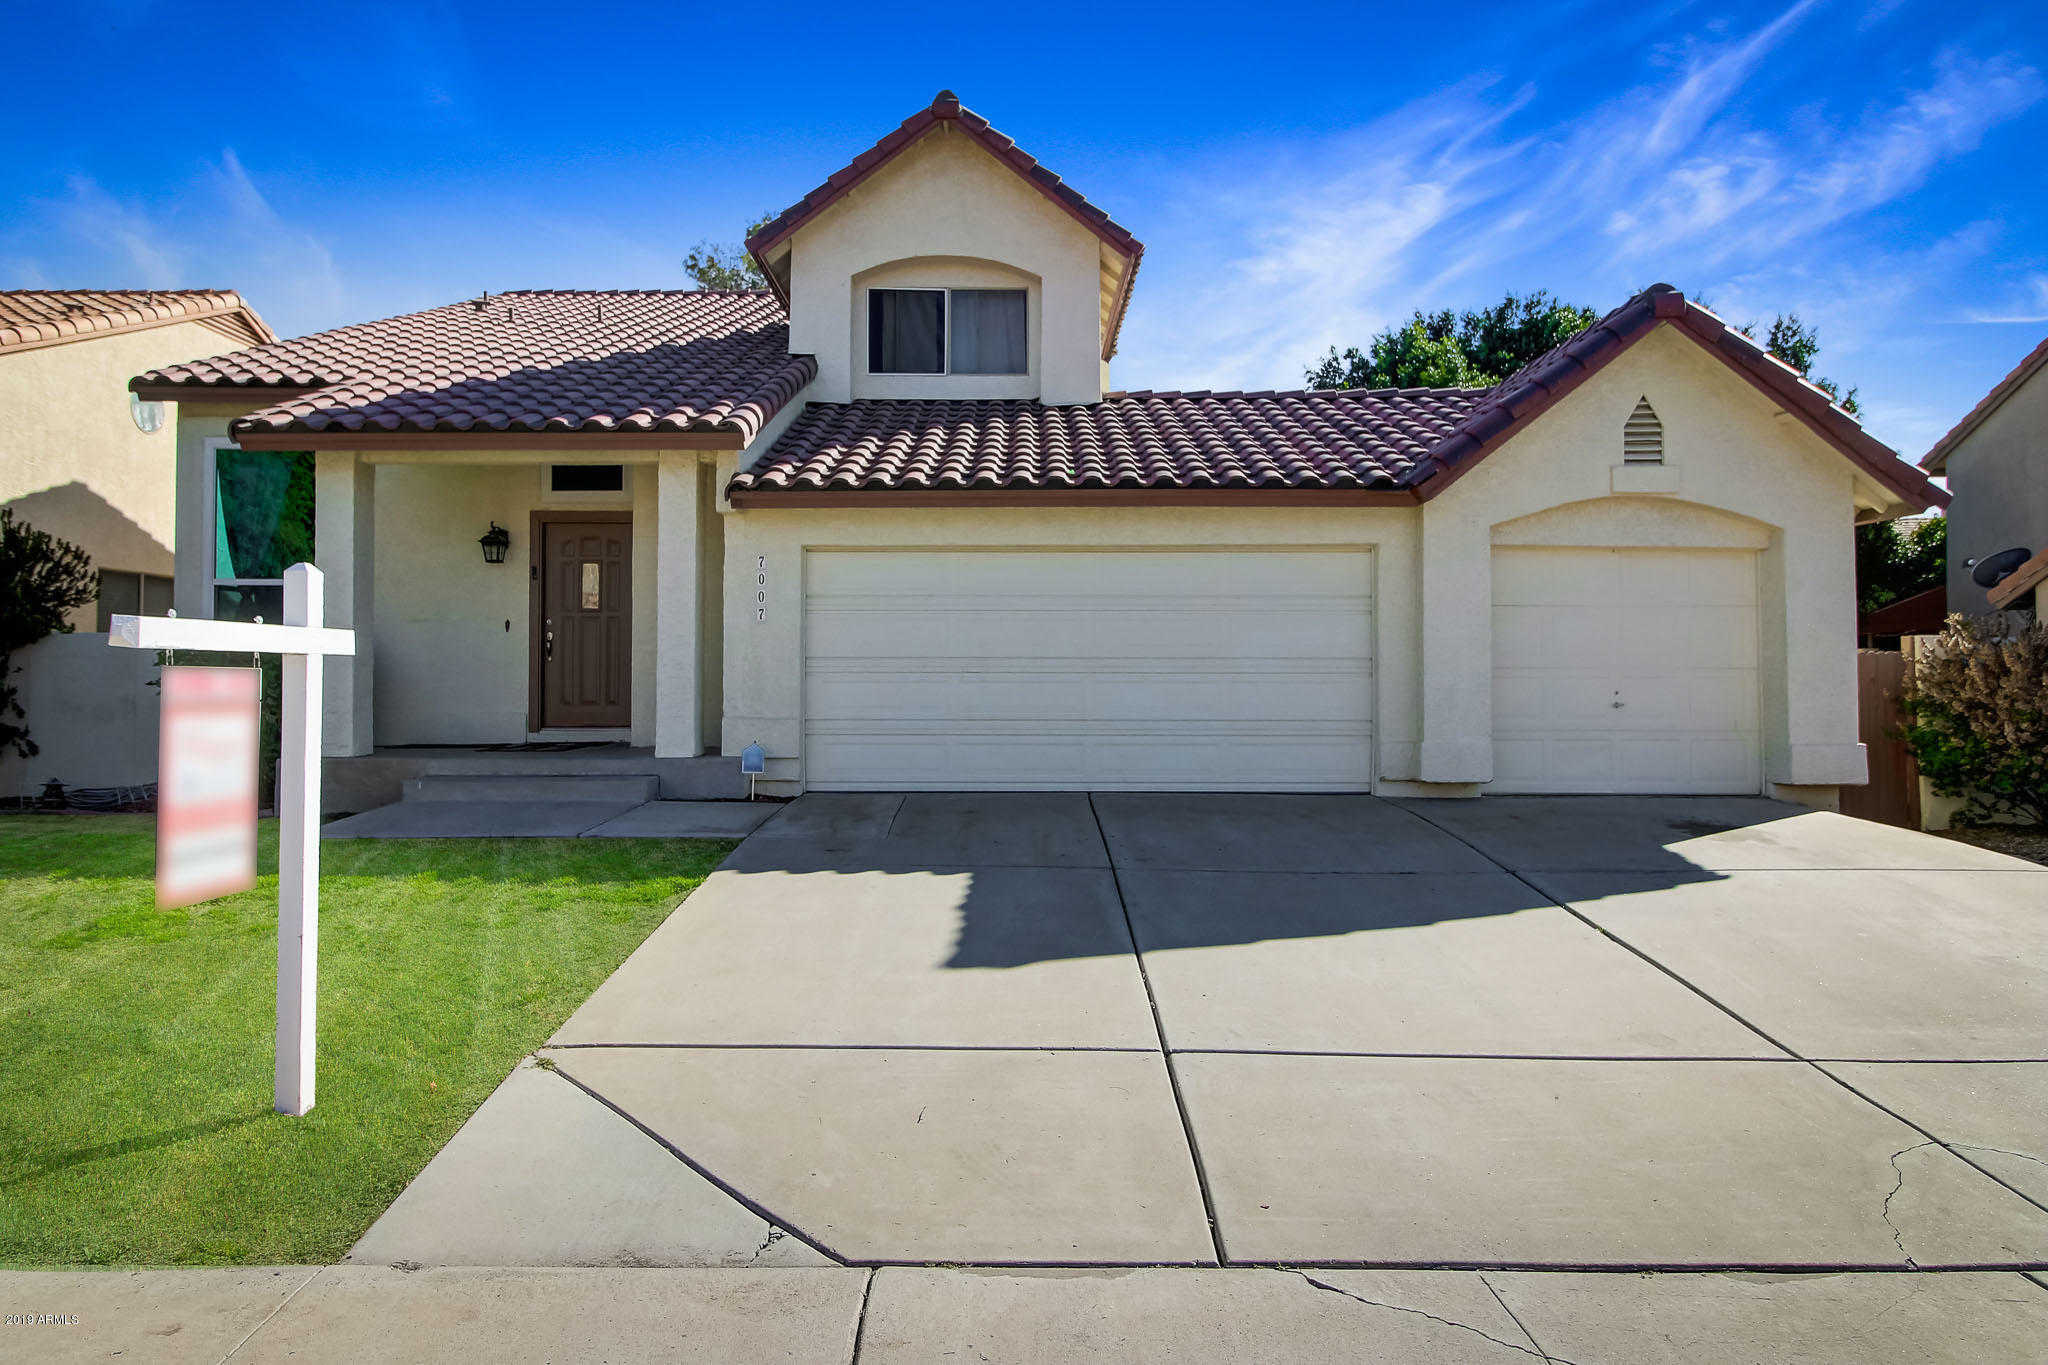 $349,900 - 5Br/4Ba - Home for Sale in Vistas At Arrowhead Ranch Lot 1-191 Tract A-c, Glendale